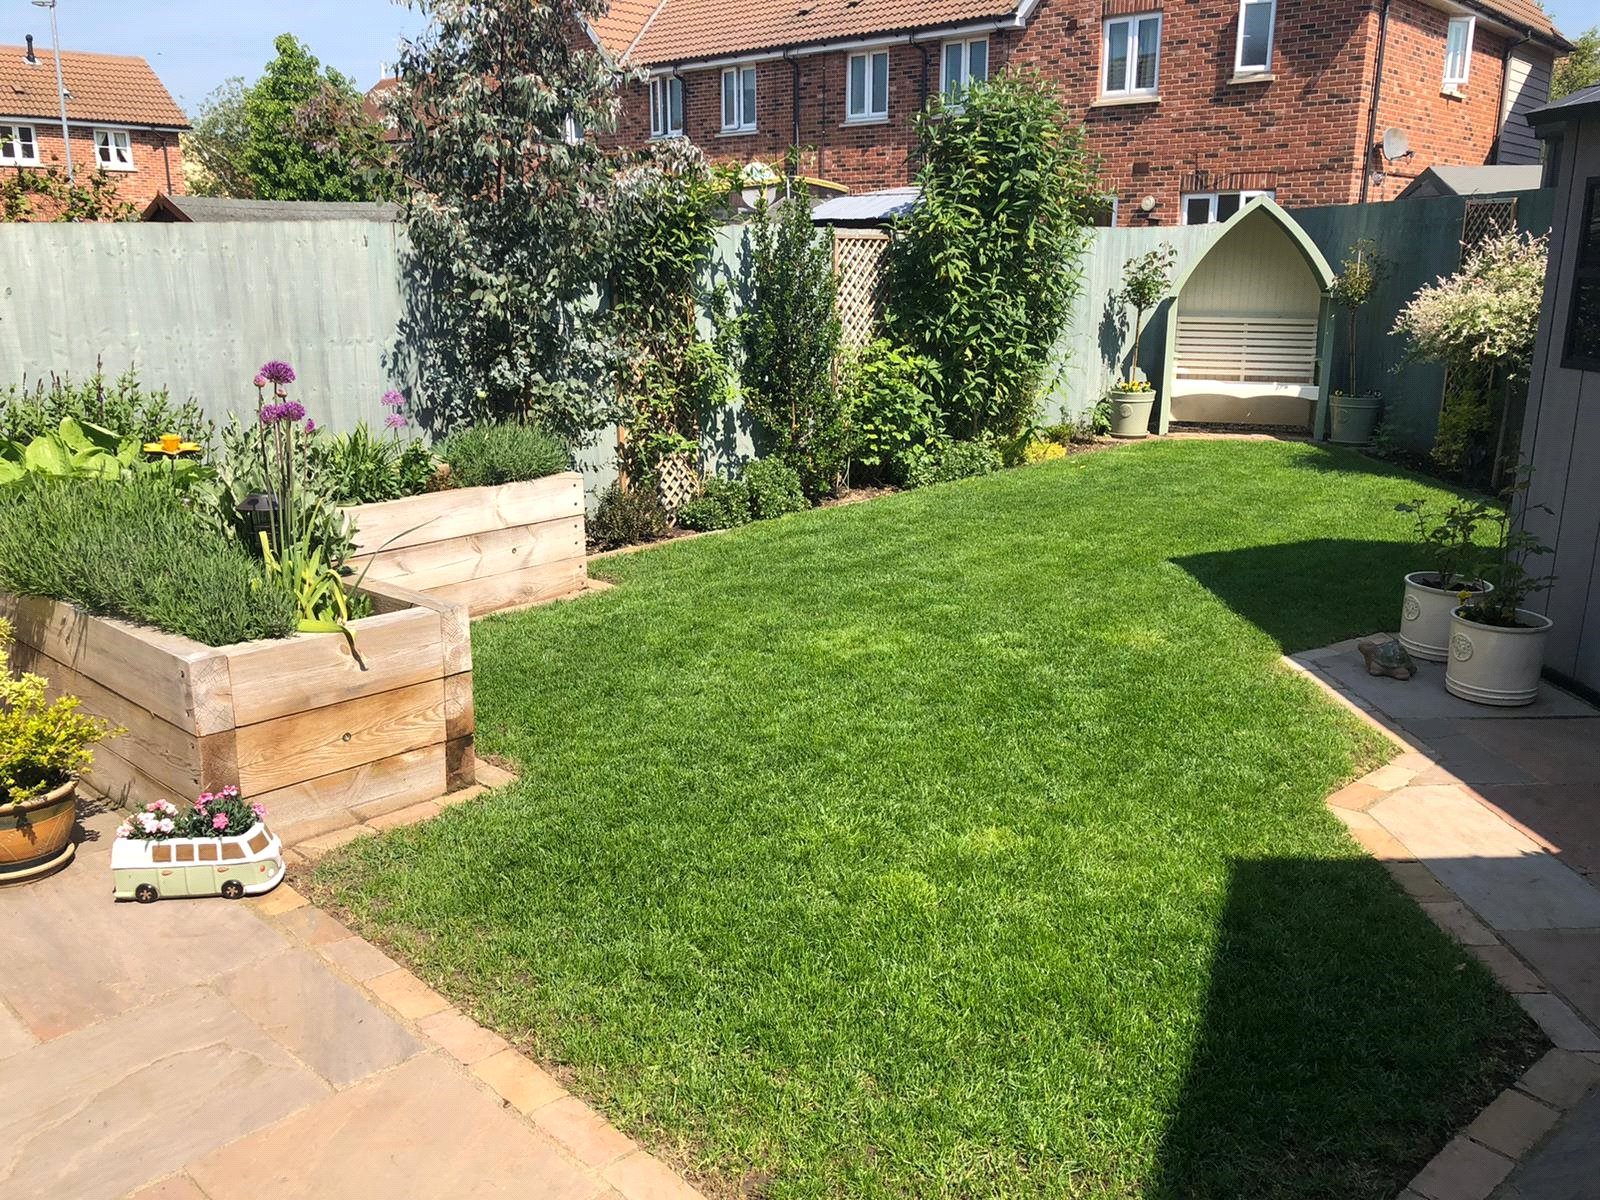 3 bed house for sale in Harvest Drive, St Neots 6